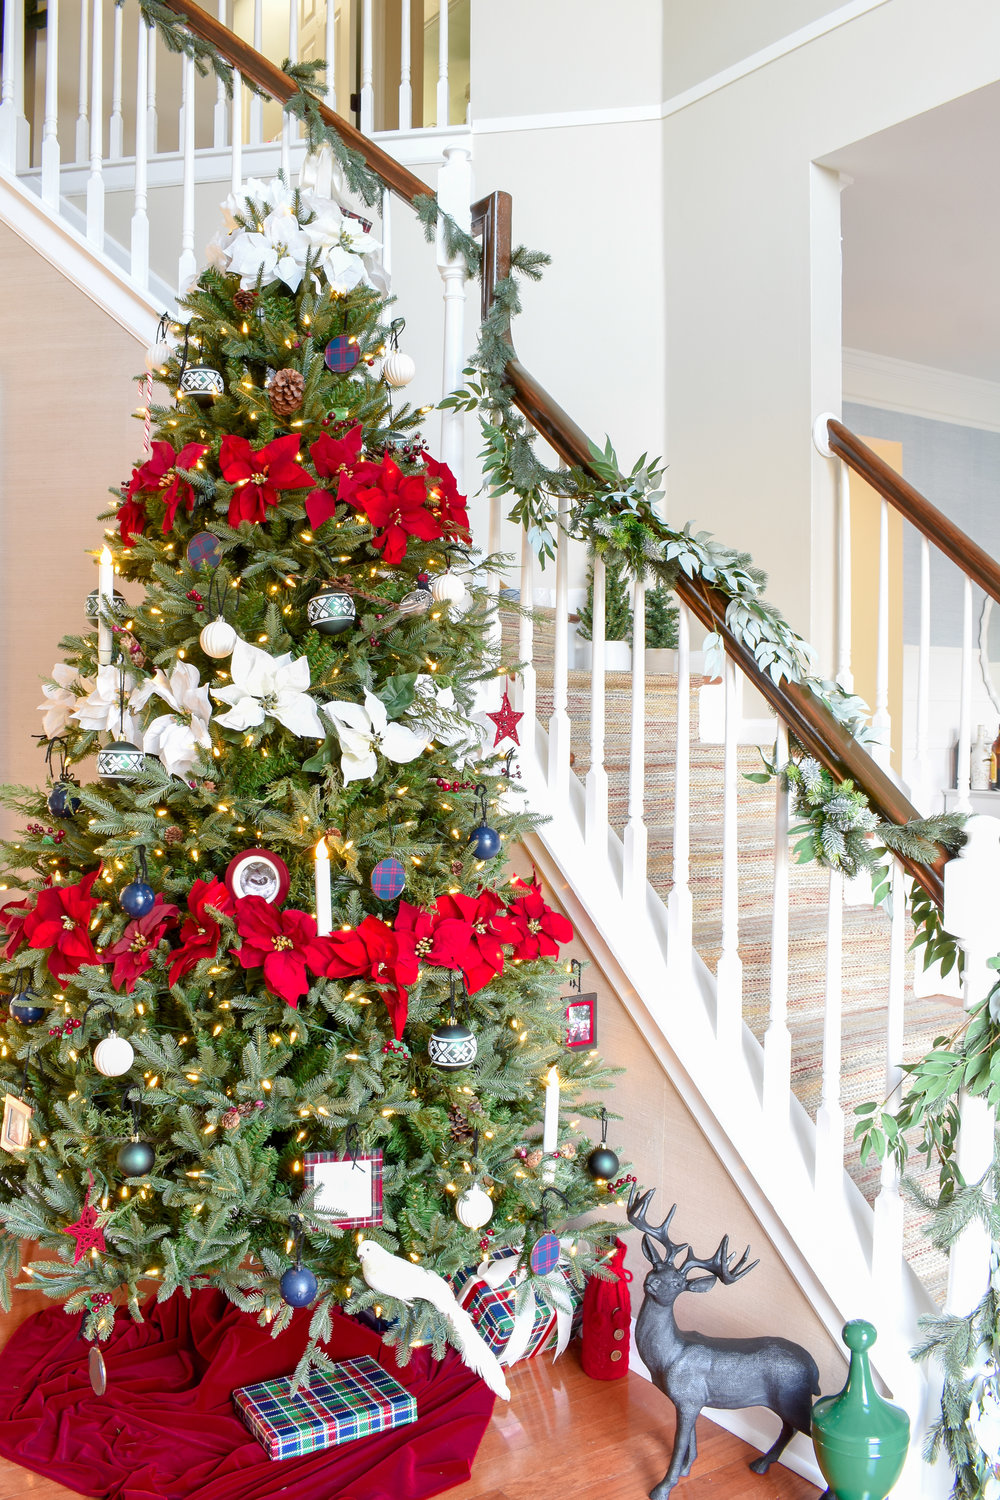 a traditional Christmas tree in the foyer adds festive cheer to a neutral space. #redandwhitechristmas #christmastree #traditionalchristmas